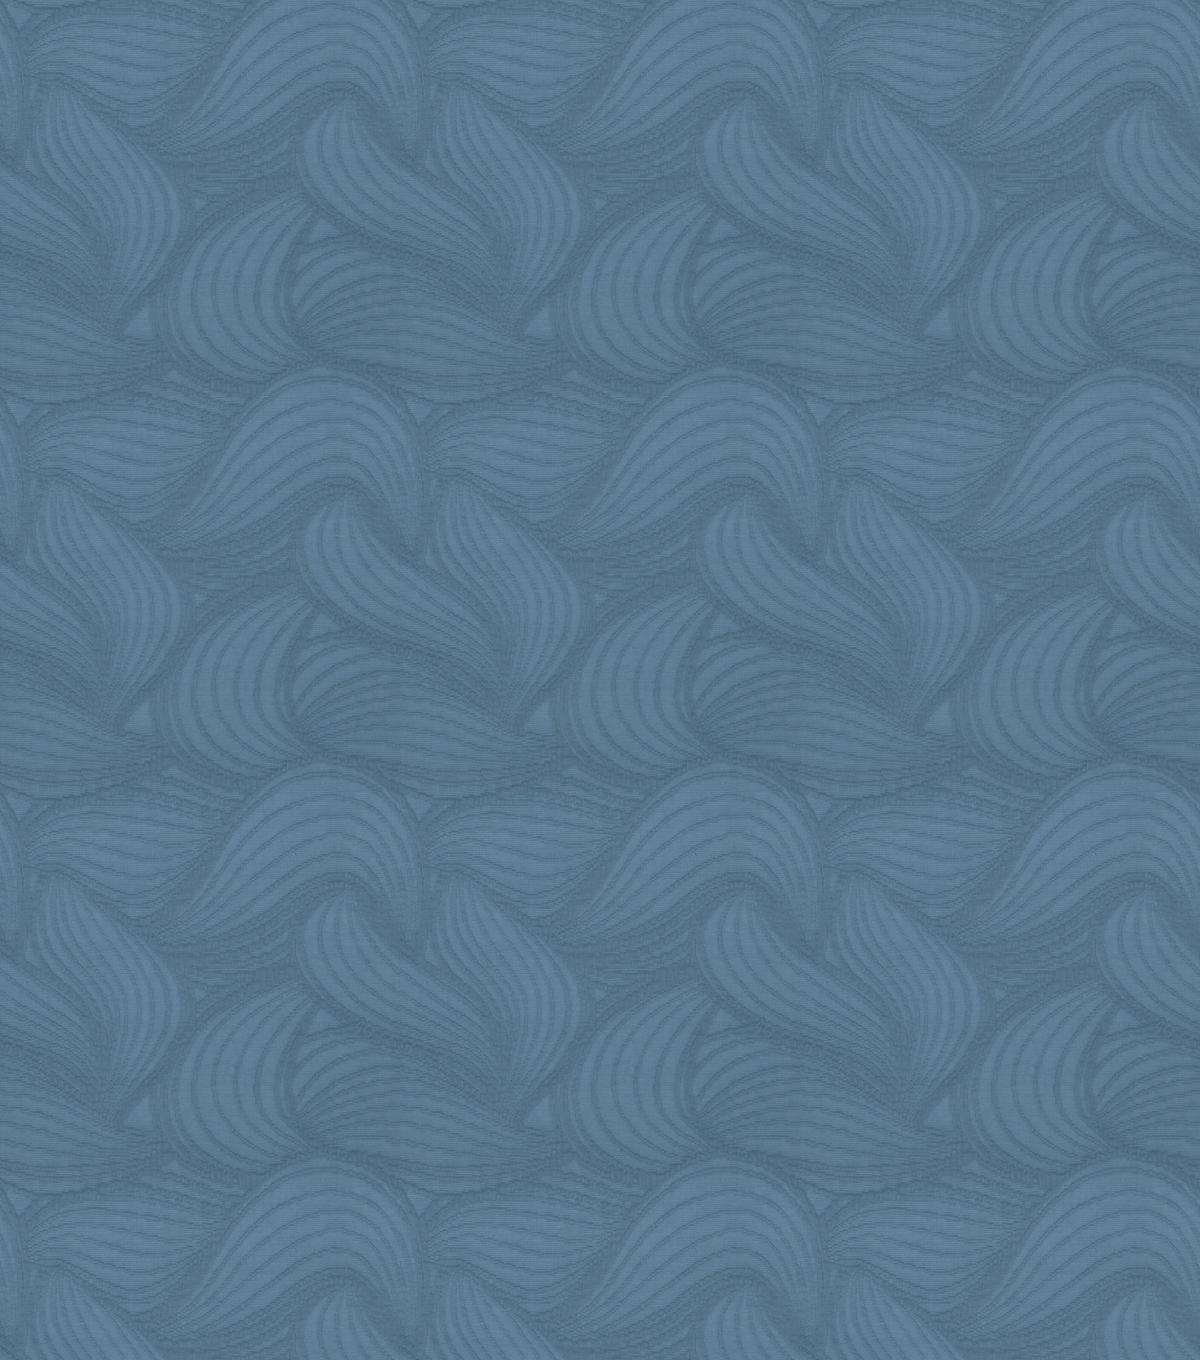 Eaton Square Multi-Purpose Decor Decor Fabric 54\u0022-Render/Scuba